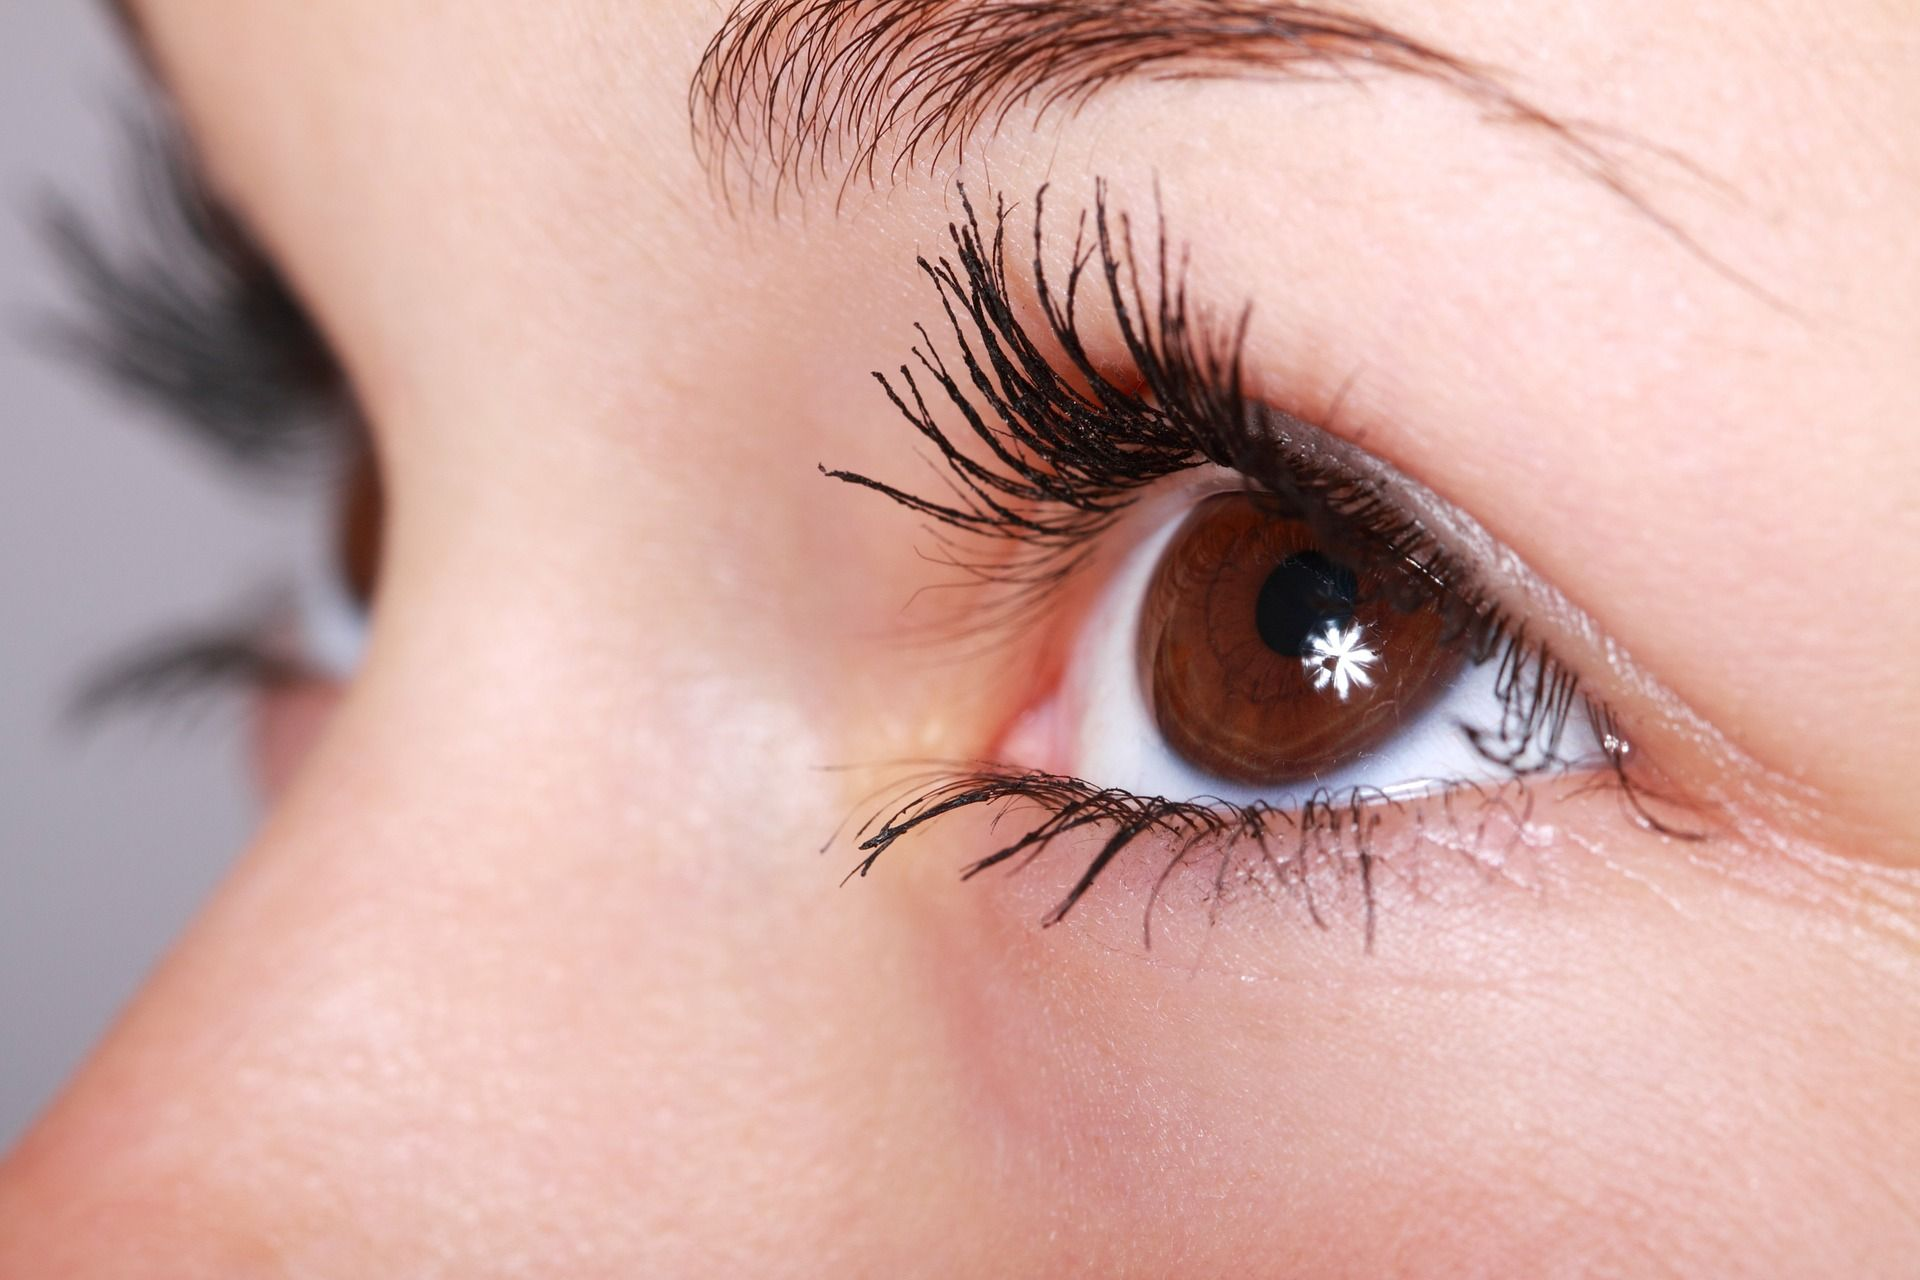 Lashes Not As Long As You Want Them We Can Help With Latisse It S A Prescription Solution That Can Help Grow Inadequa Overnight Beauty Eye Care Eye Exercises